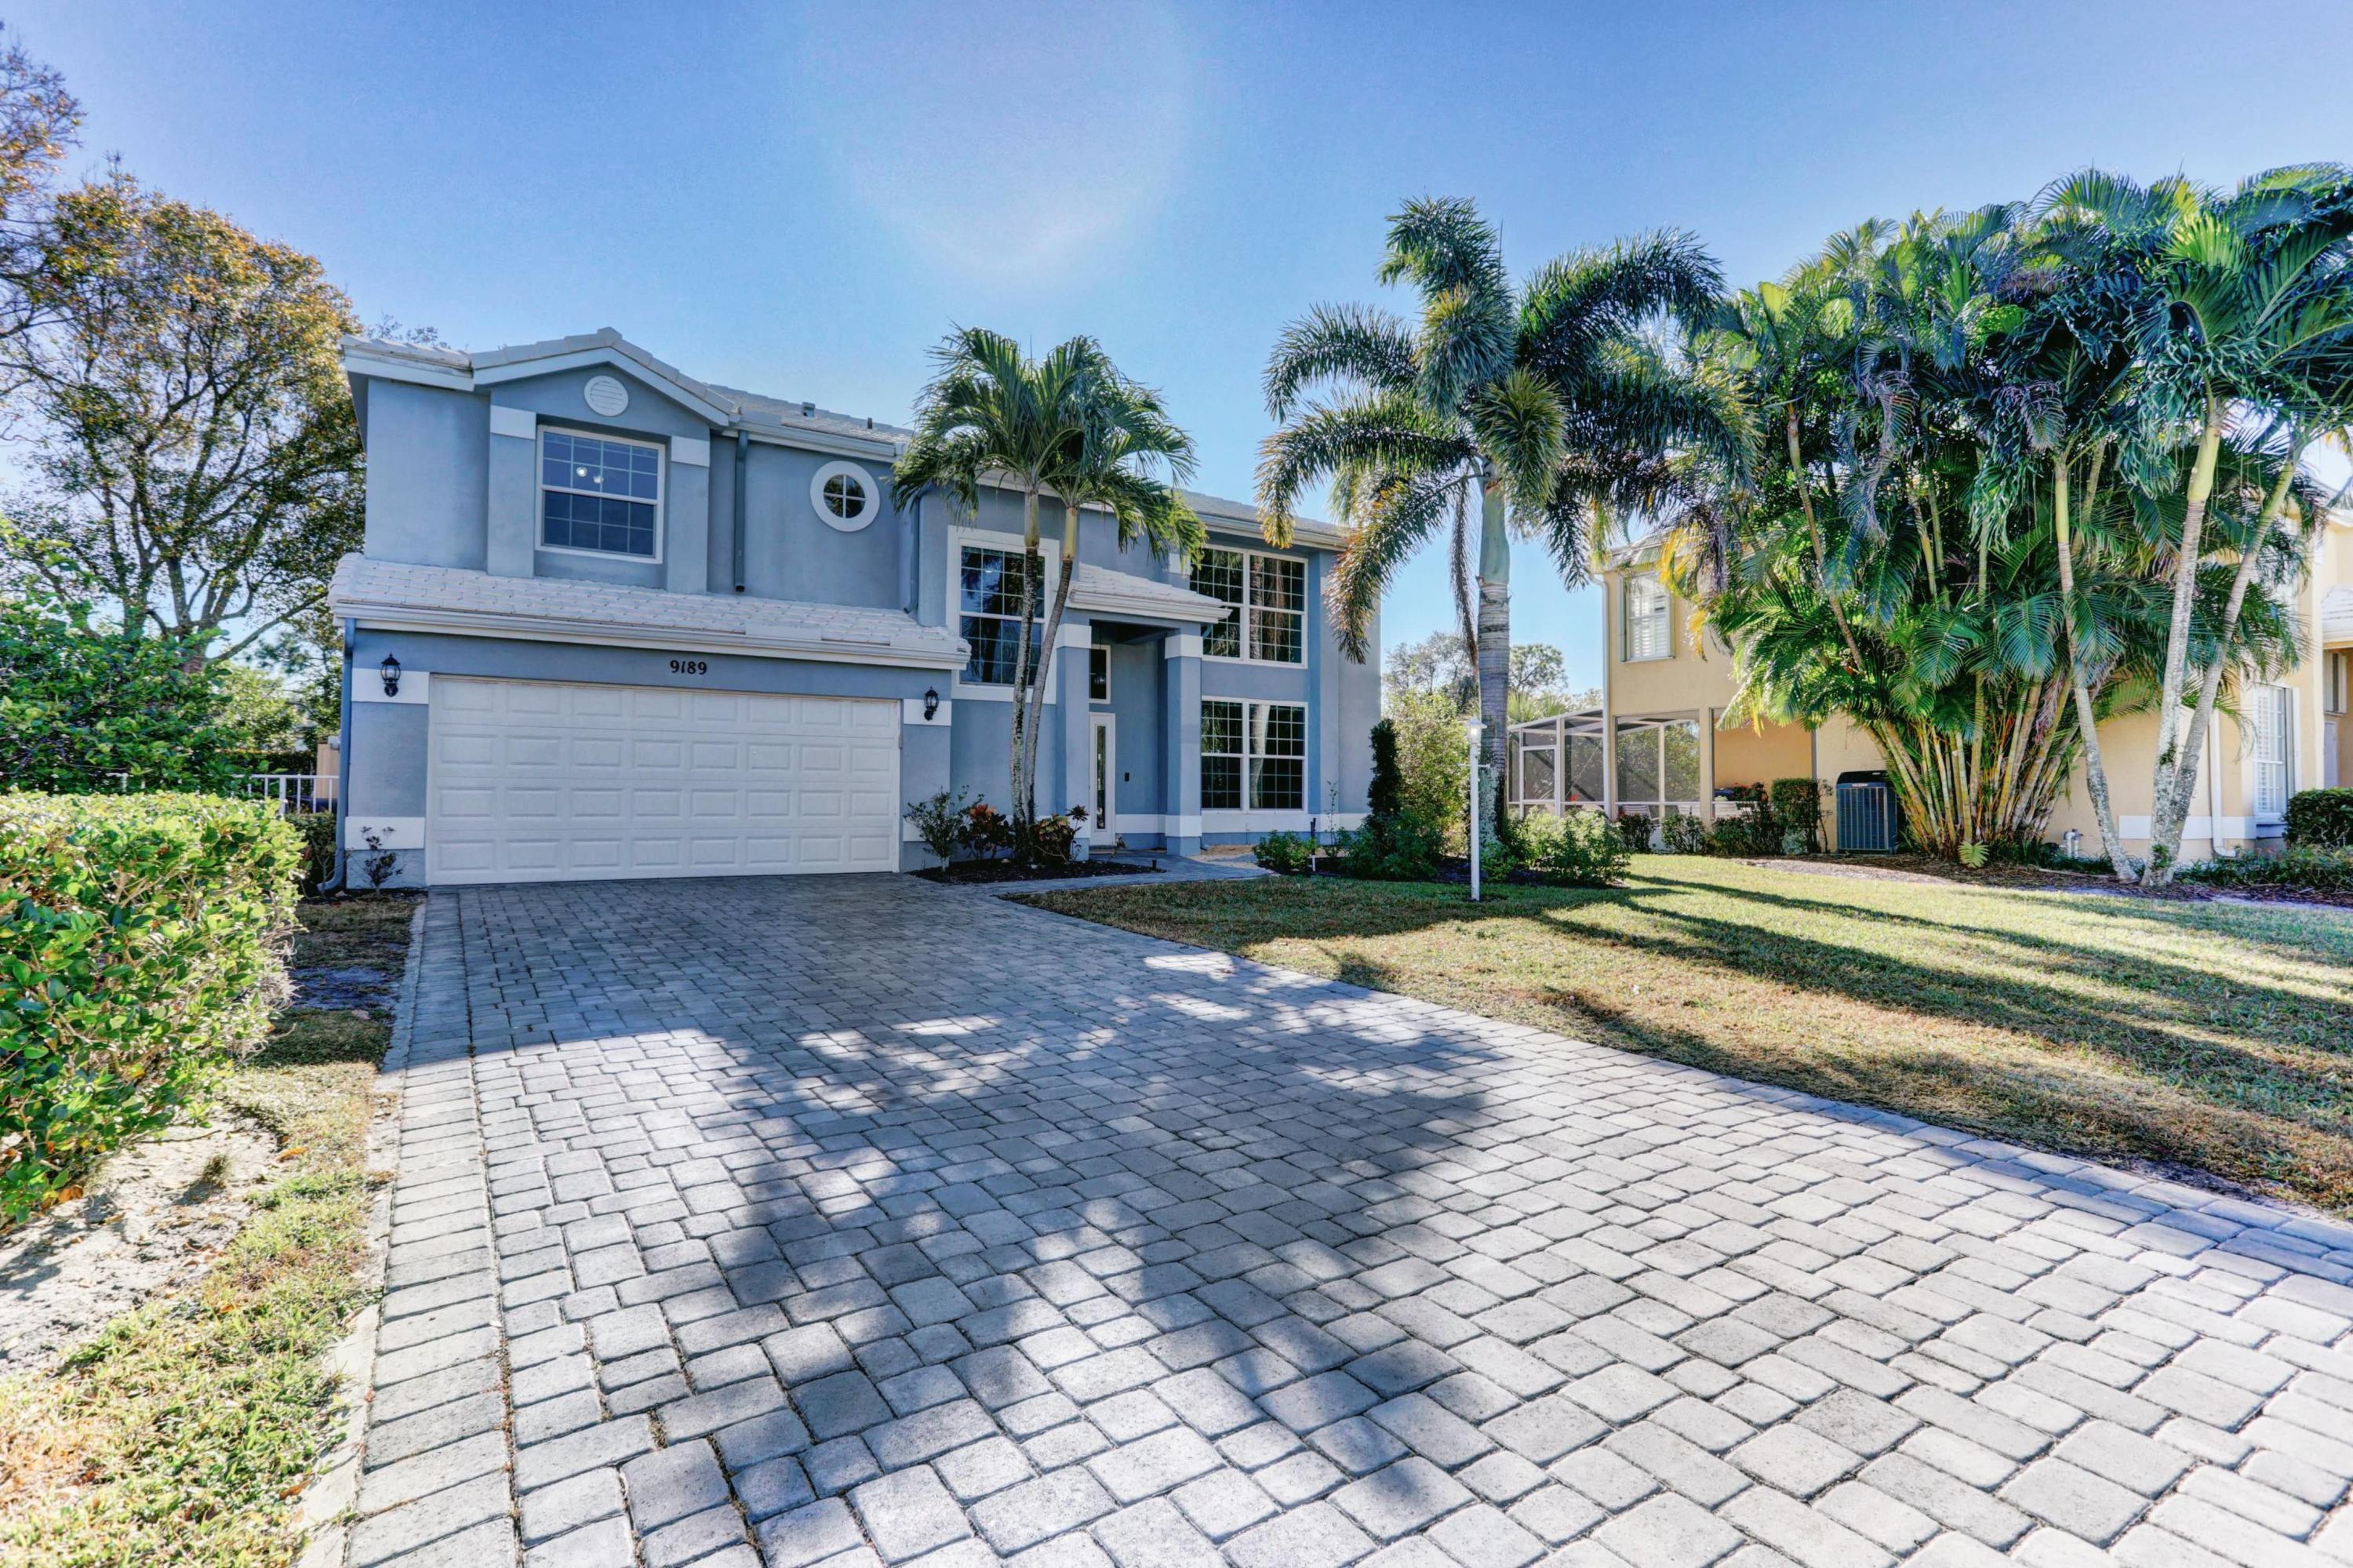 Home for sale in North Passage Tequesta Florida